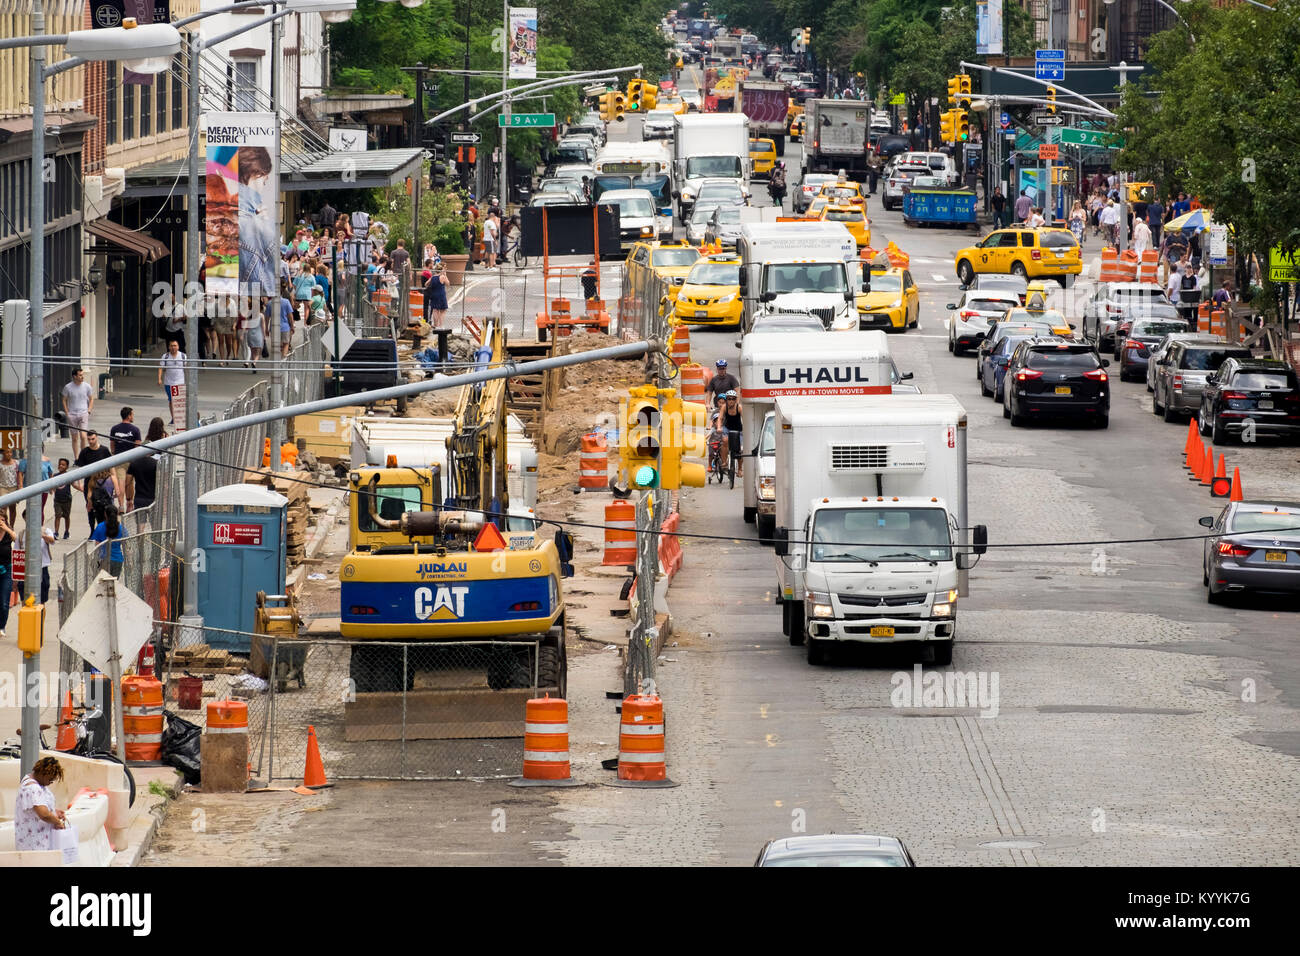 Traffic congestion and road works in the Meatpacking district of Manhattan, New York City, USA - Stock Image